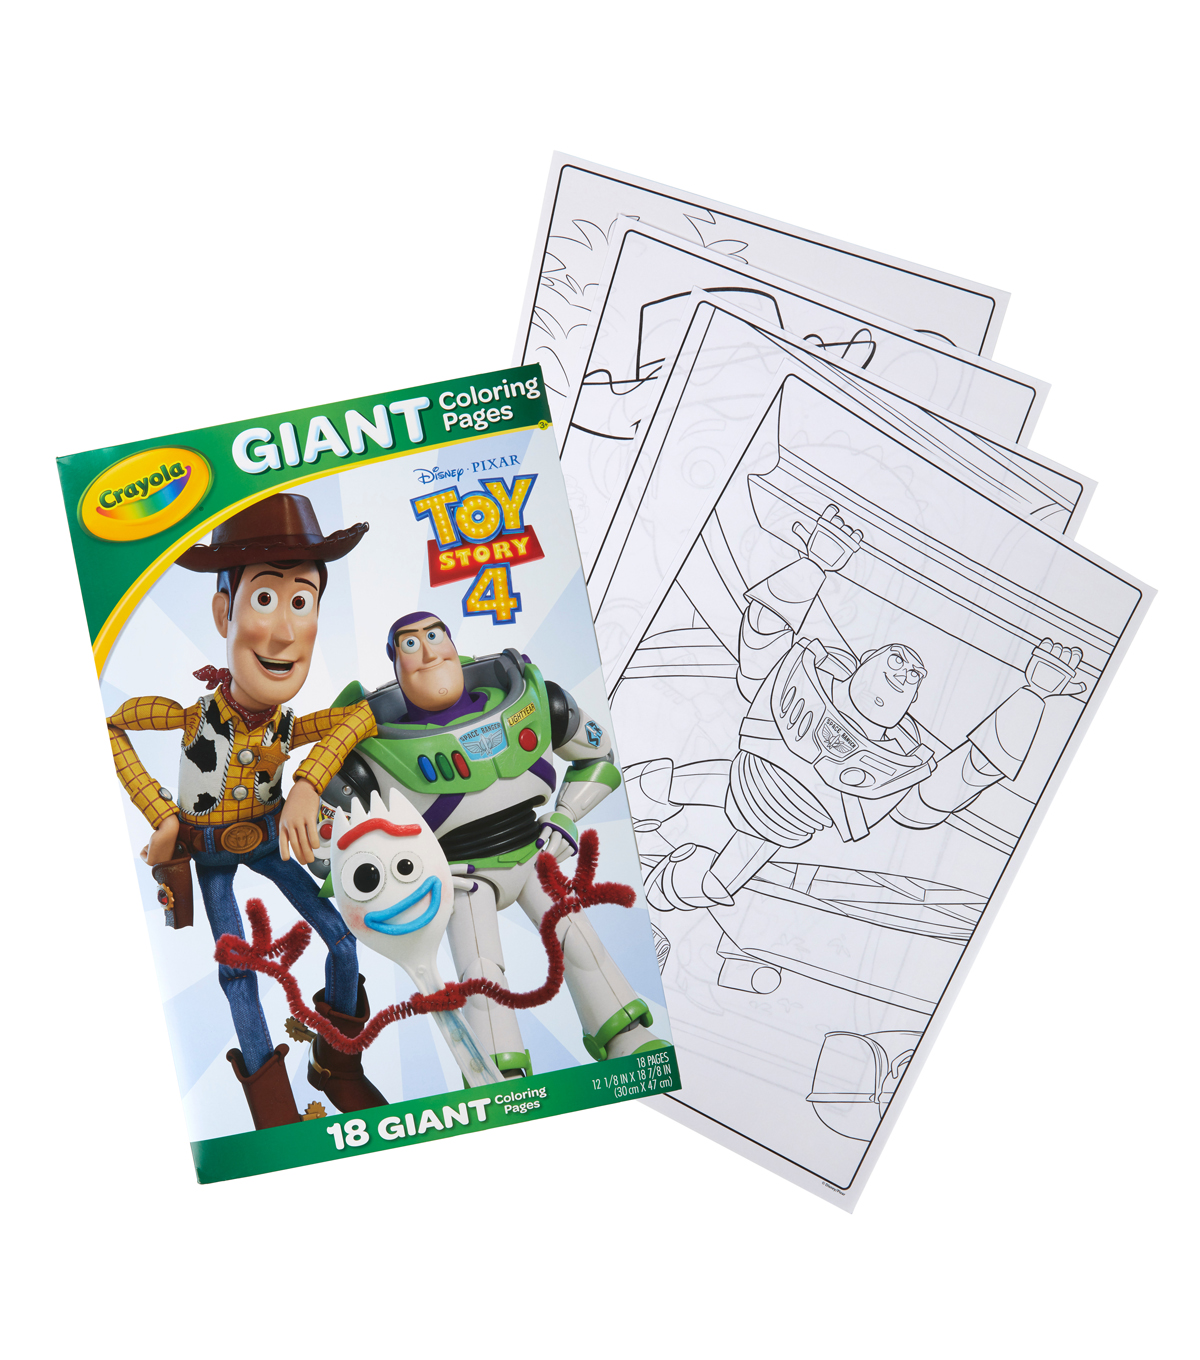 Crayola Giant Coloring Pages Toy Story 4 | JOANN